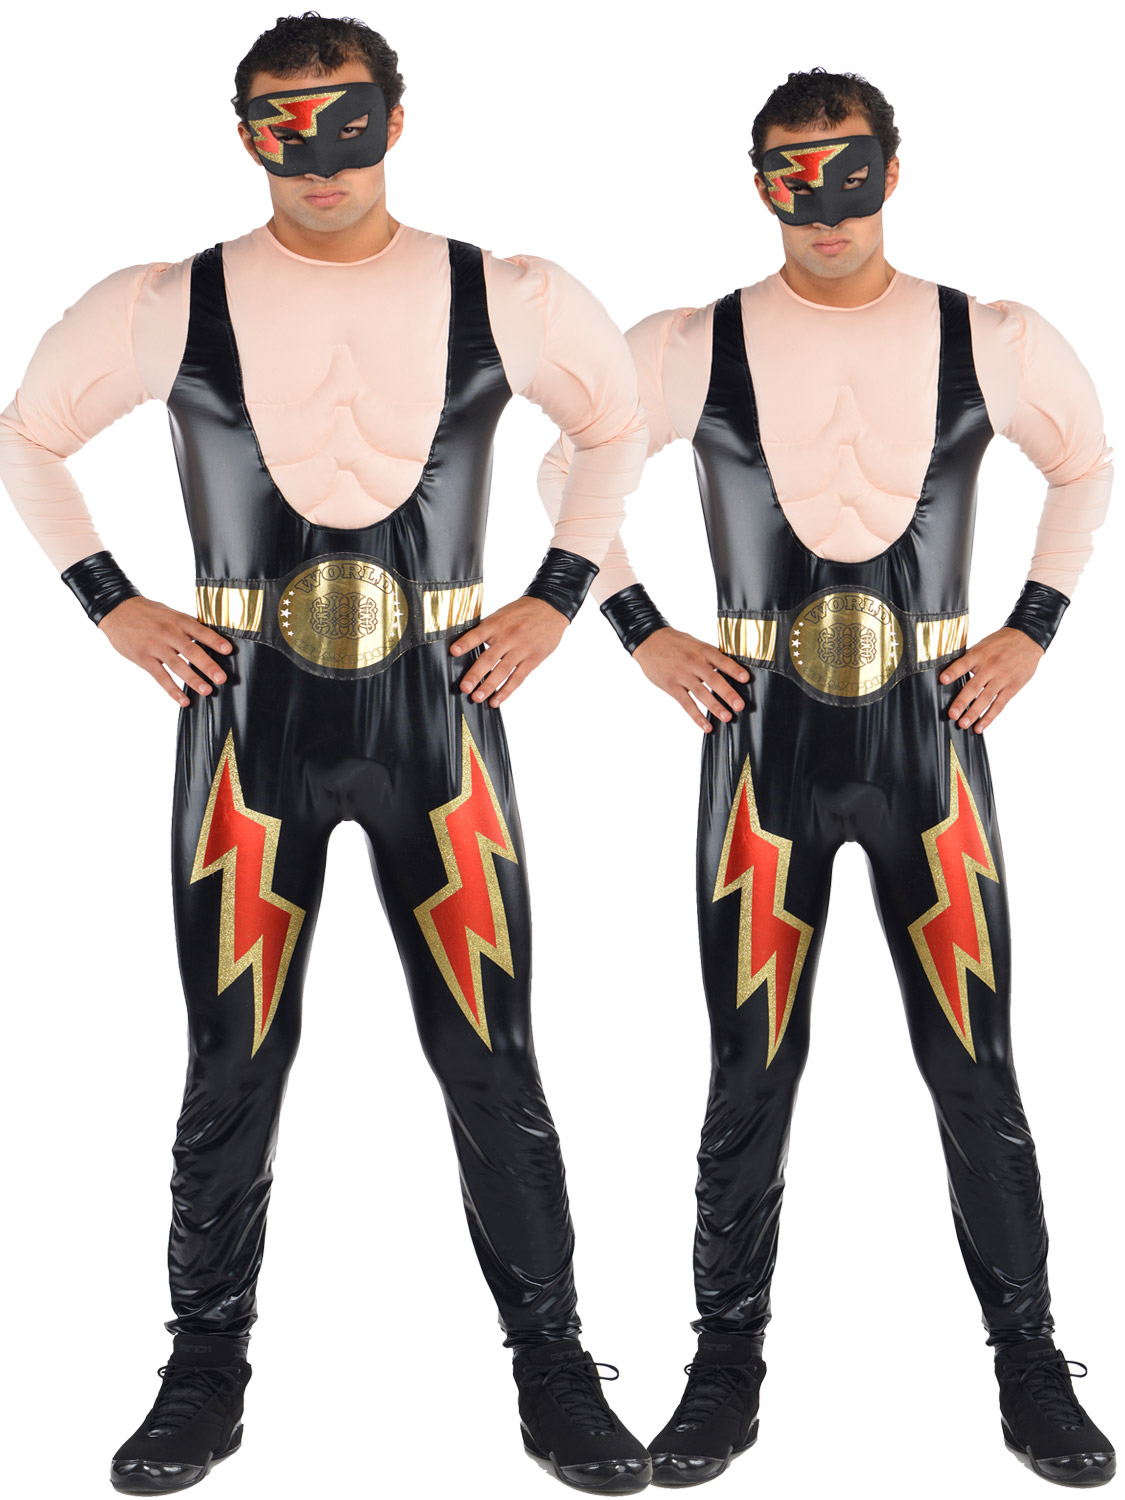 Mens wrestler costume adult wwe wwf wrestling fighter fancy dress transform yourself into a wwe champion with this wrestler costume ideal for a themed party freshers or new years eve solutioingenieria